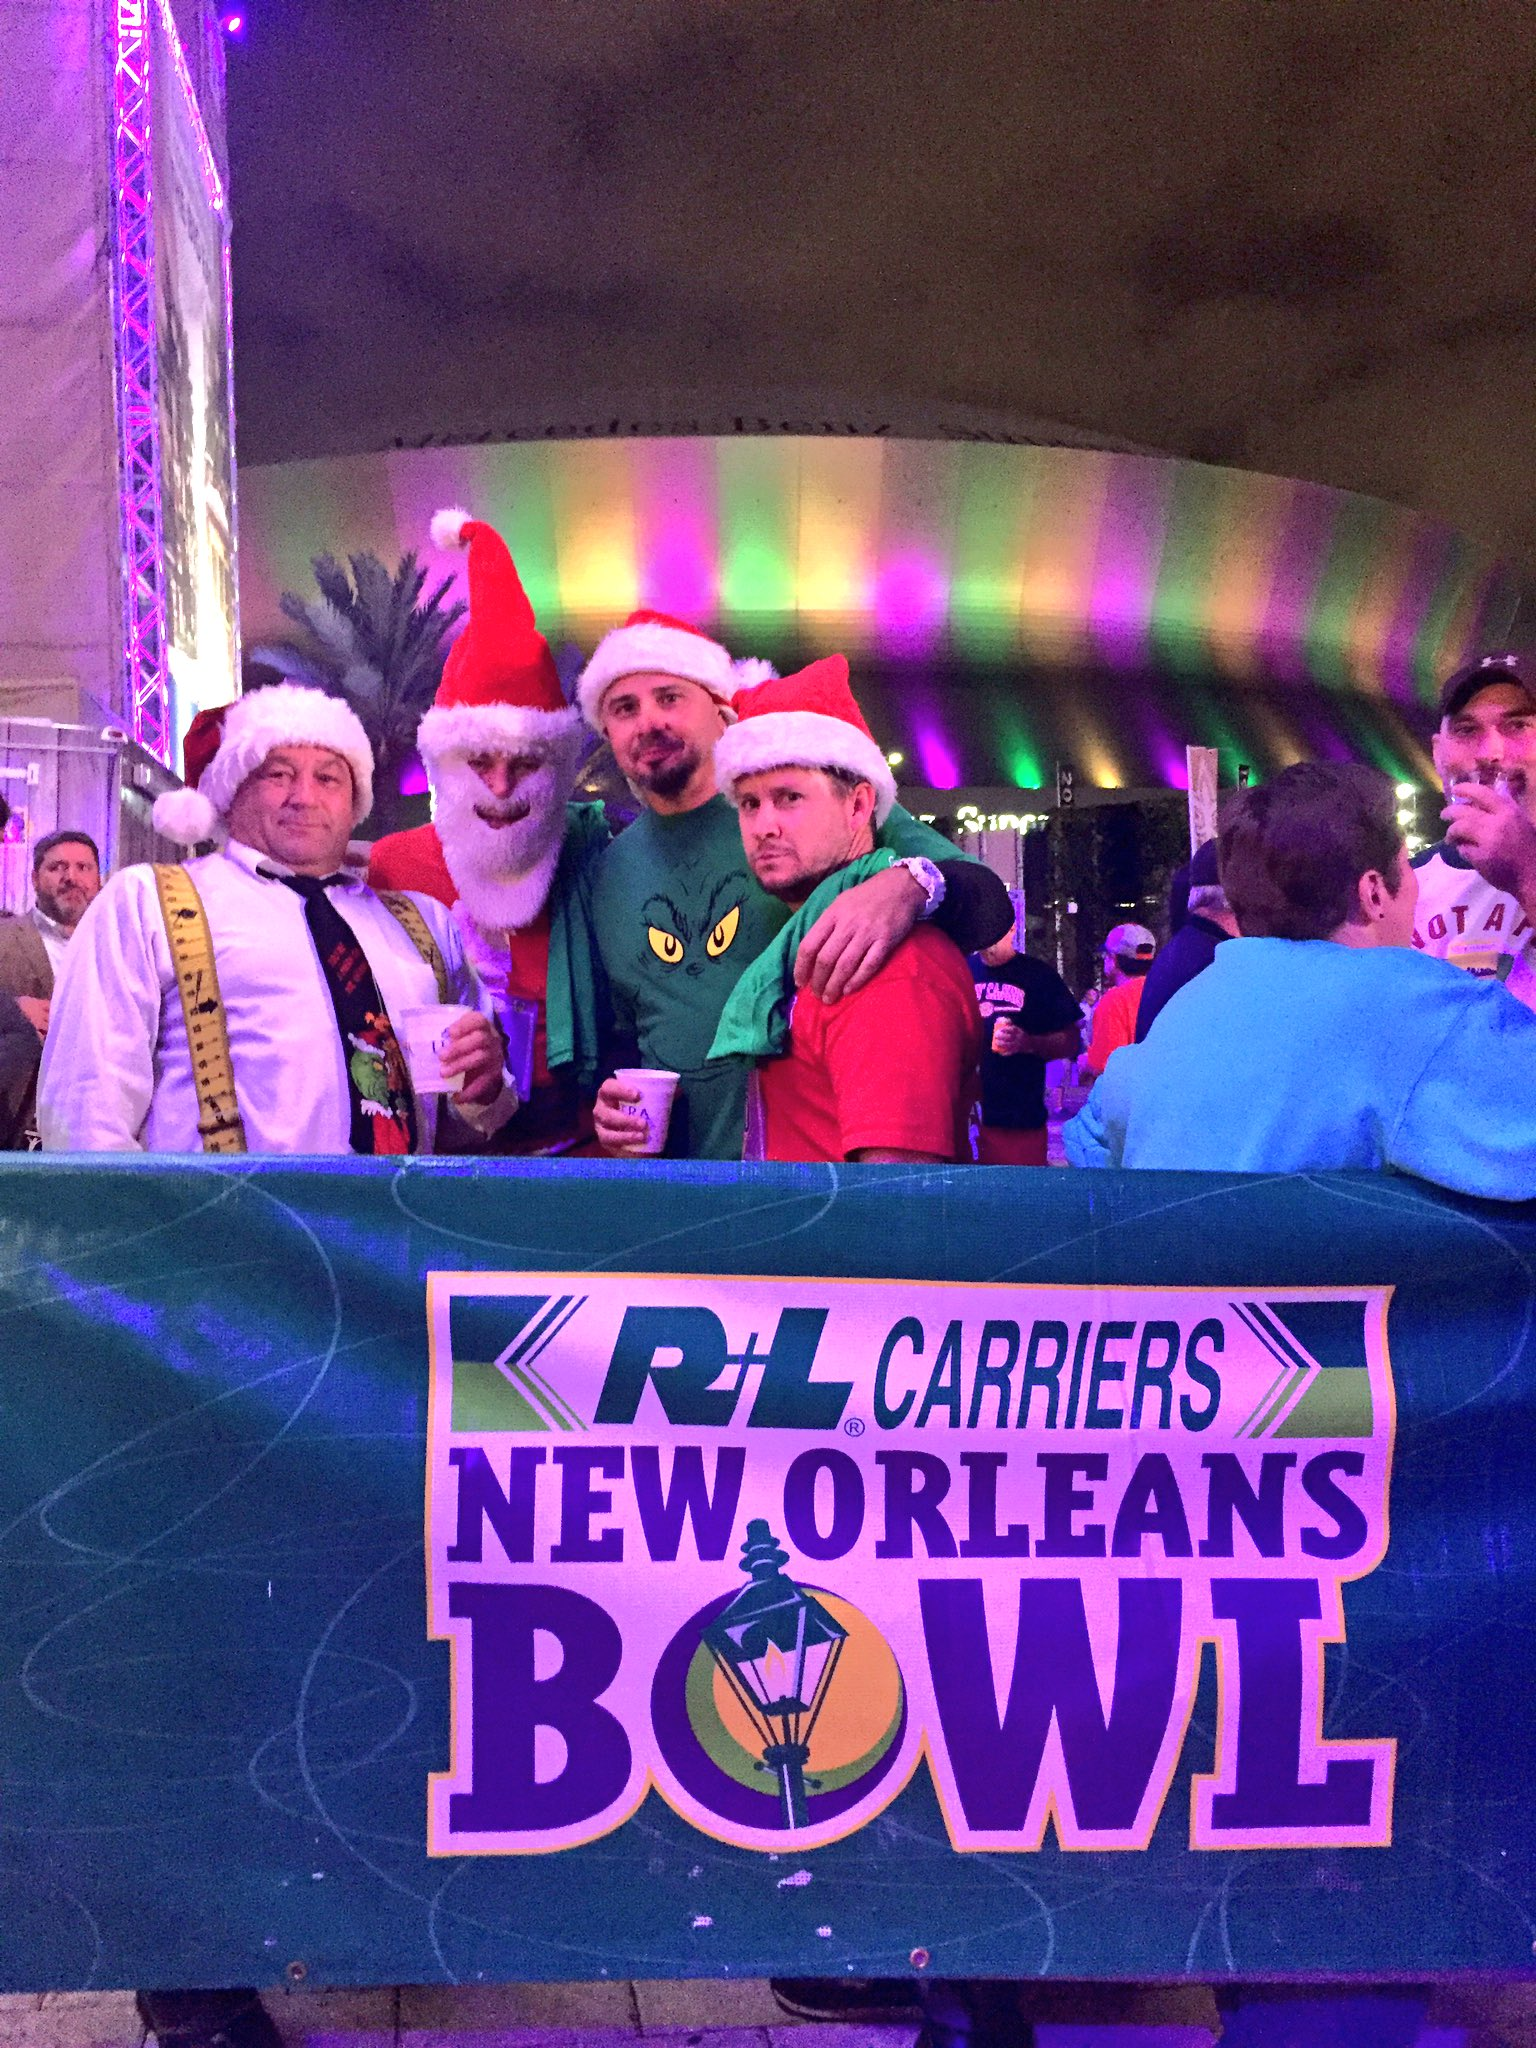 Santa is here at the @ginblossoms and Better Than Ezra #neworleansbowl concert at @ChampionsSquare! #followyourjoy #followyournola #rlbowl https://t.co/Lgn8MGPtSp